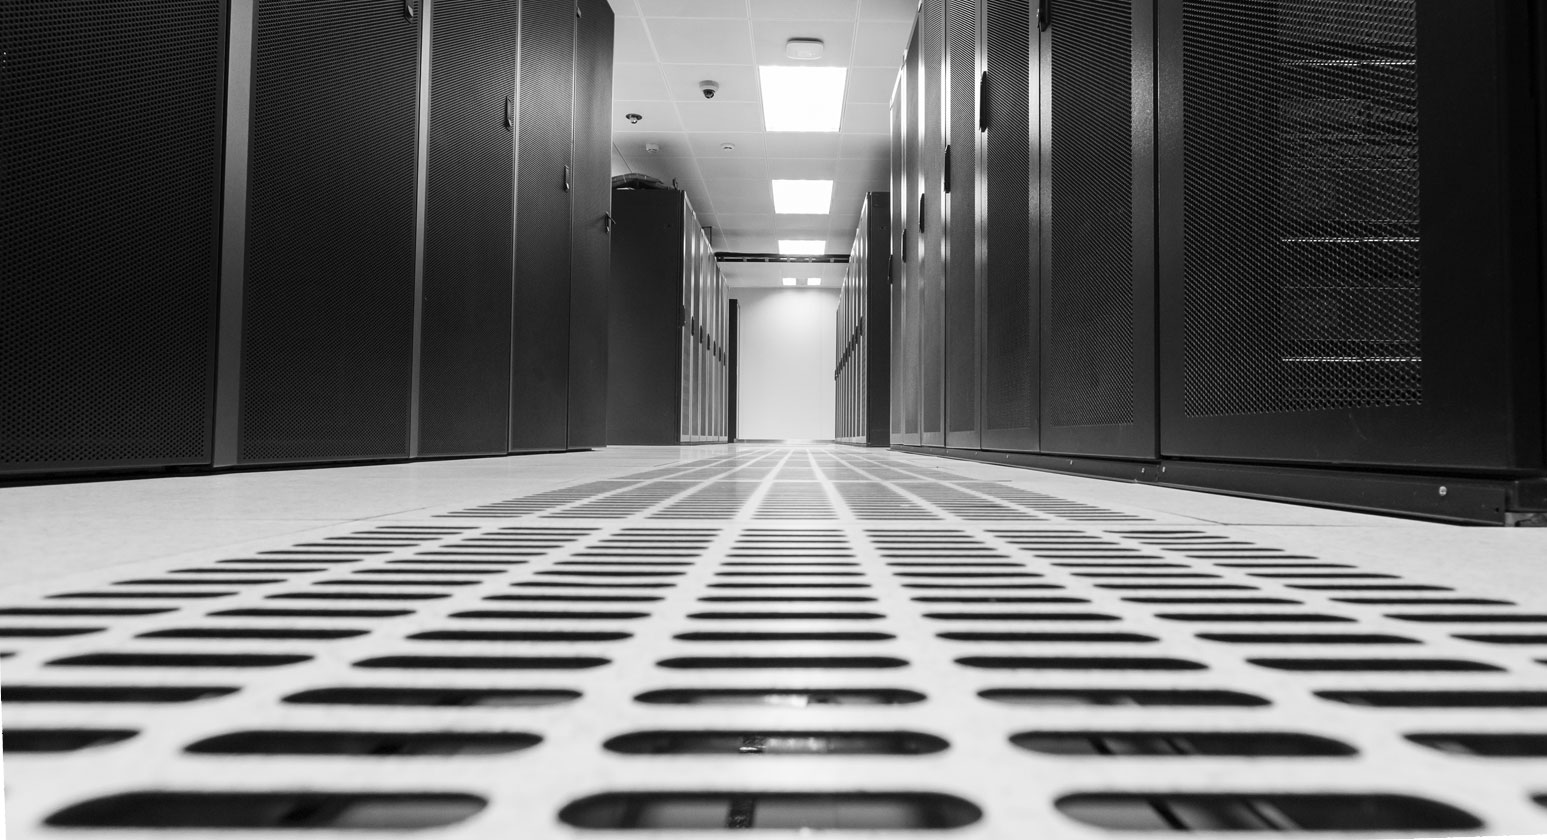 Data Room Floor Tiles : Data center resources solutions service